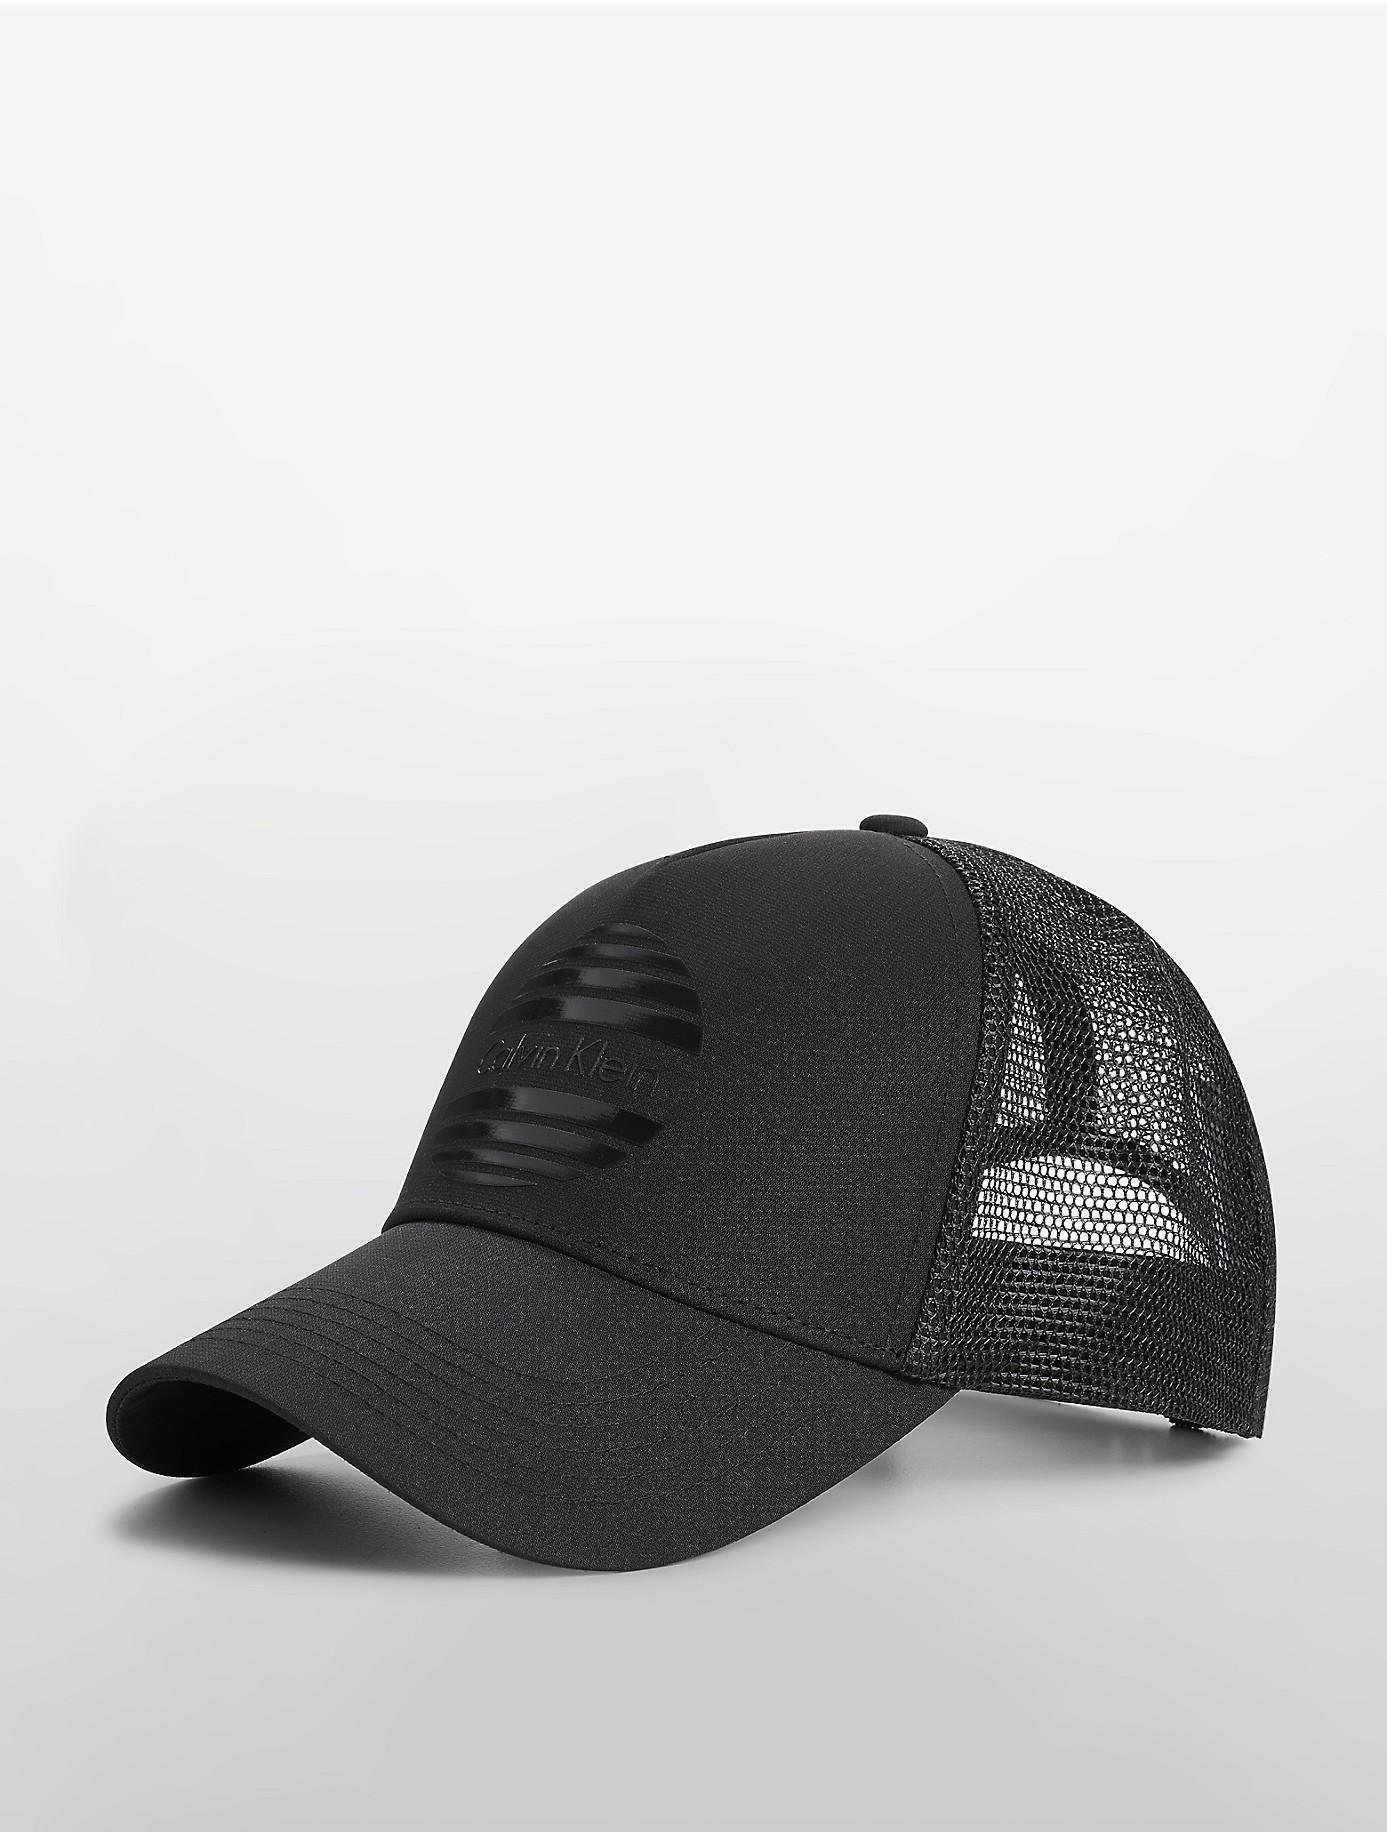 8409c9e9f02 Lyst - Calvin Klein Shutter Logo Trucker Cap in Black for Men